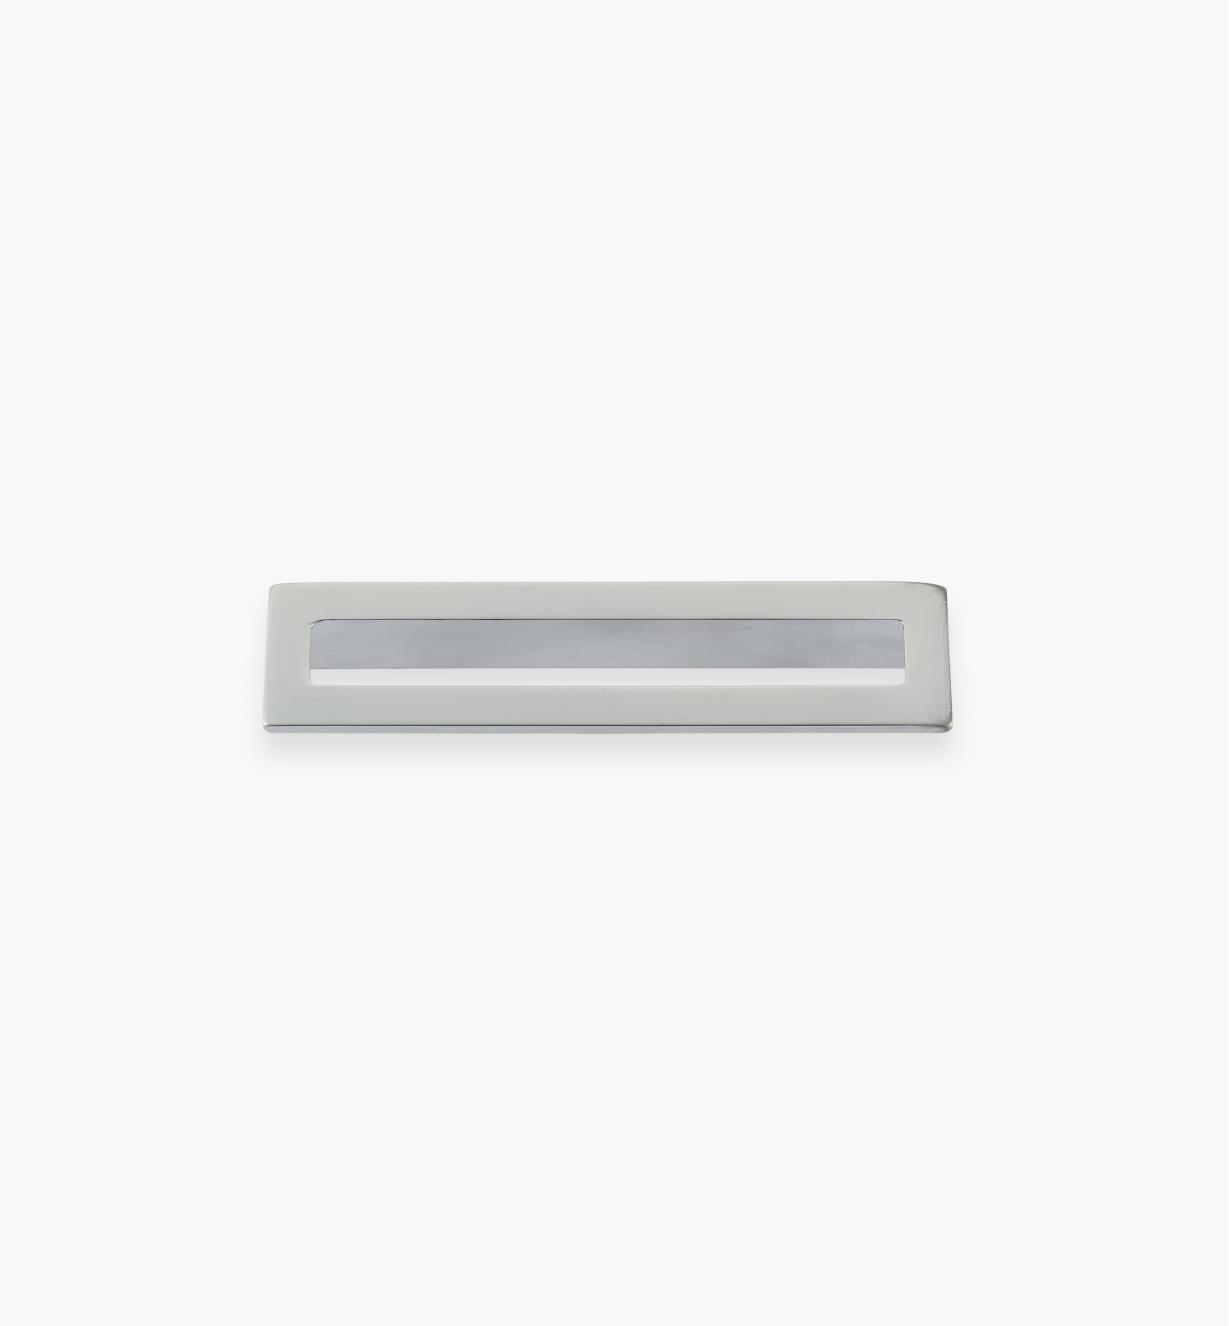 01G1893 - 96mm x 102mm Matte Chrome Core Handle, each